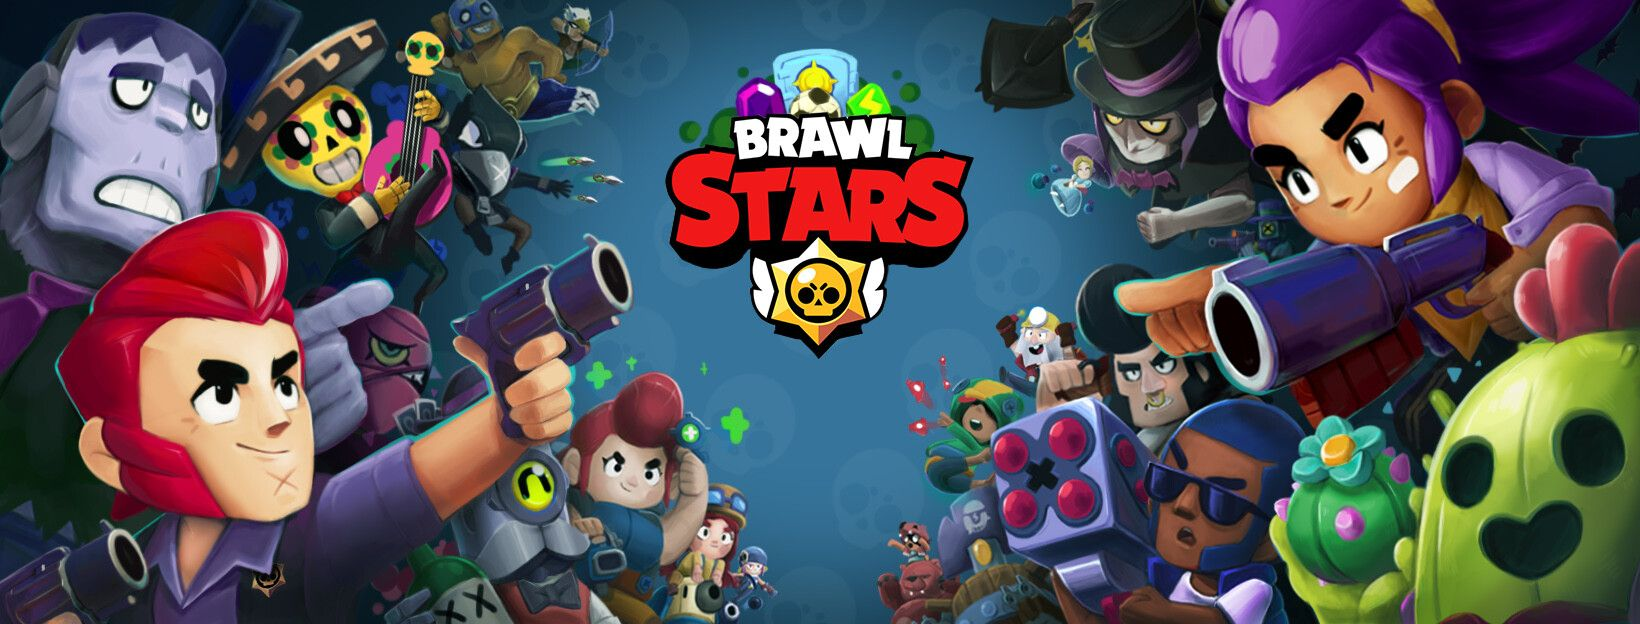 Artstation The Creation Of Brawl Stars Brawlstars Fan Art